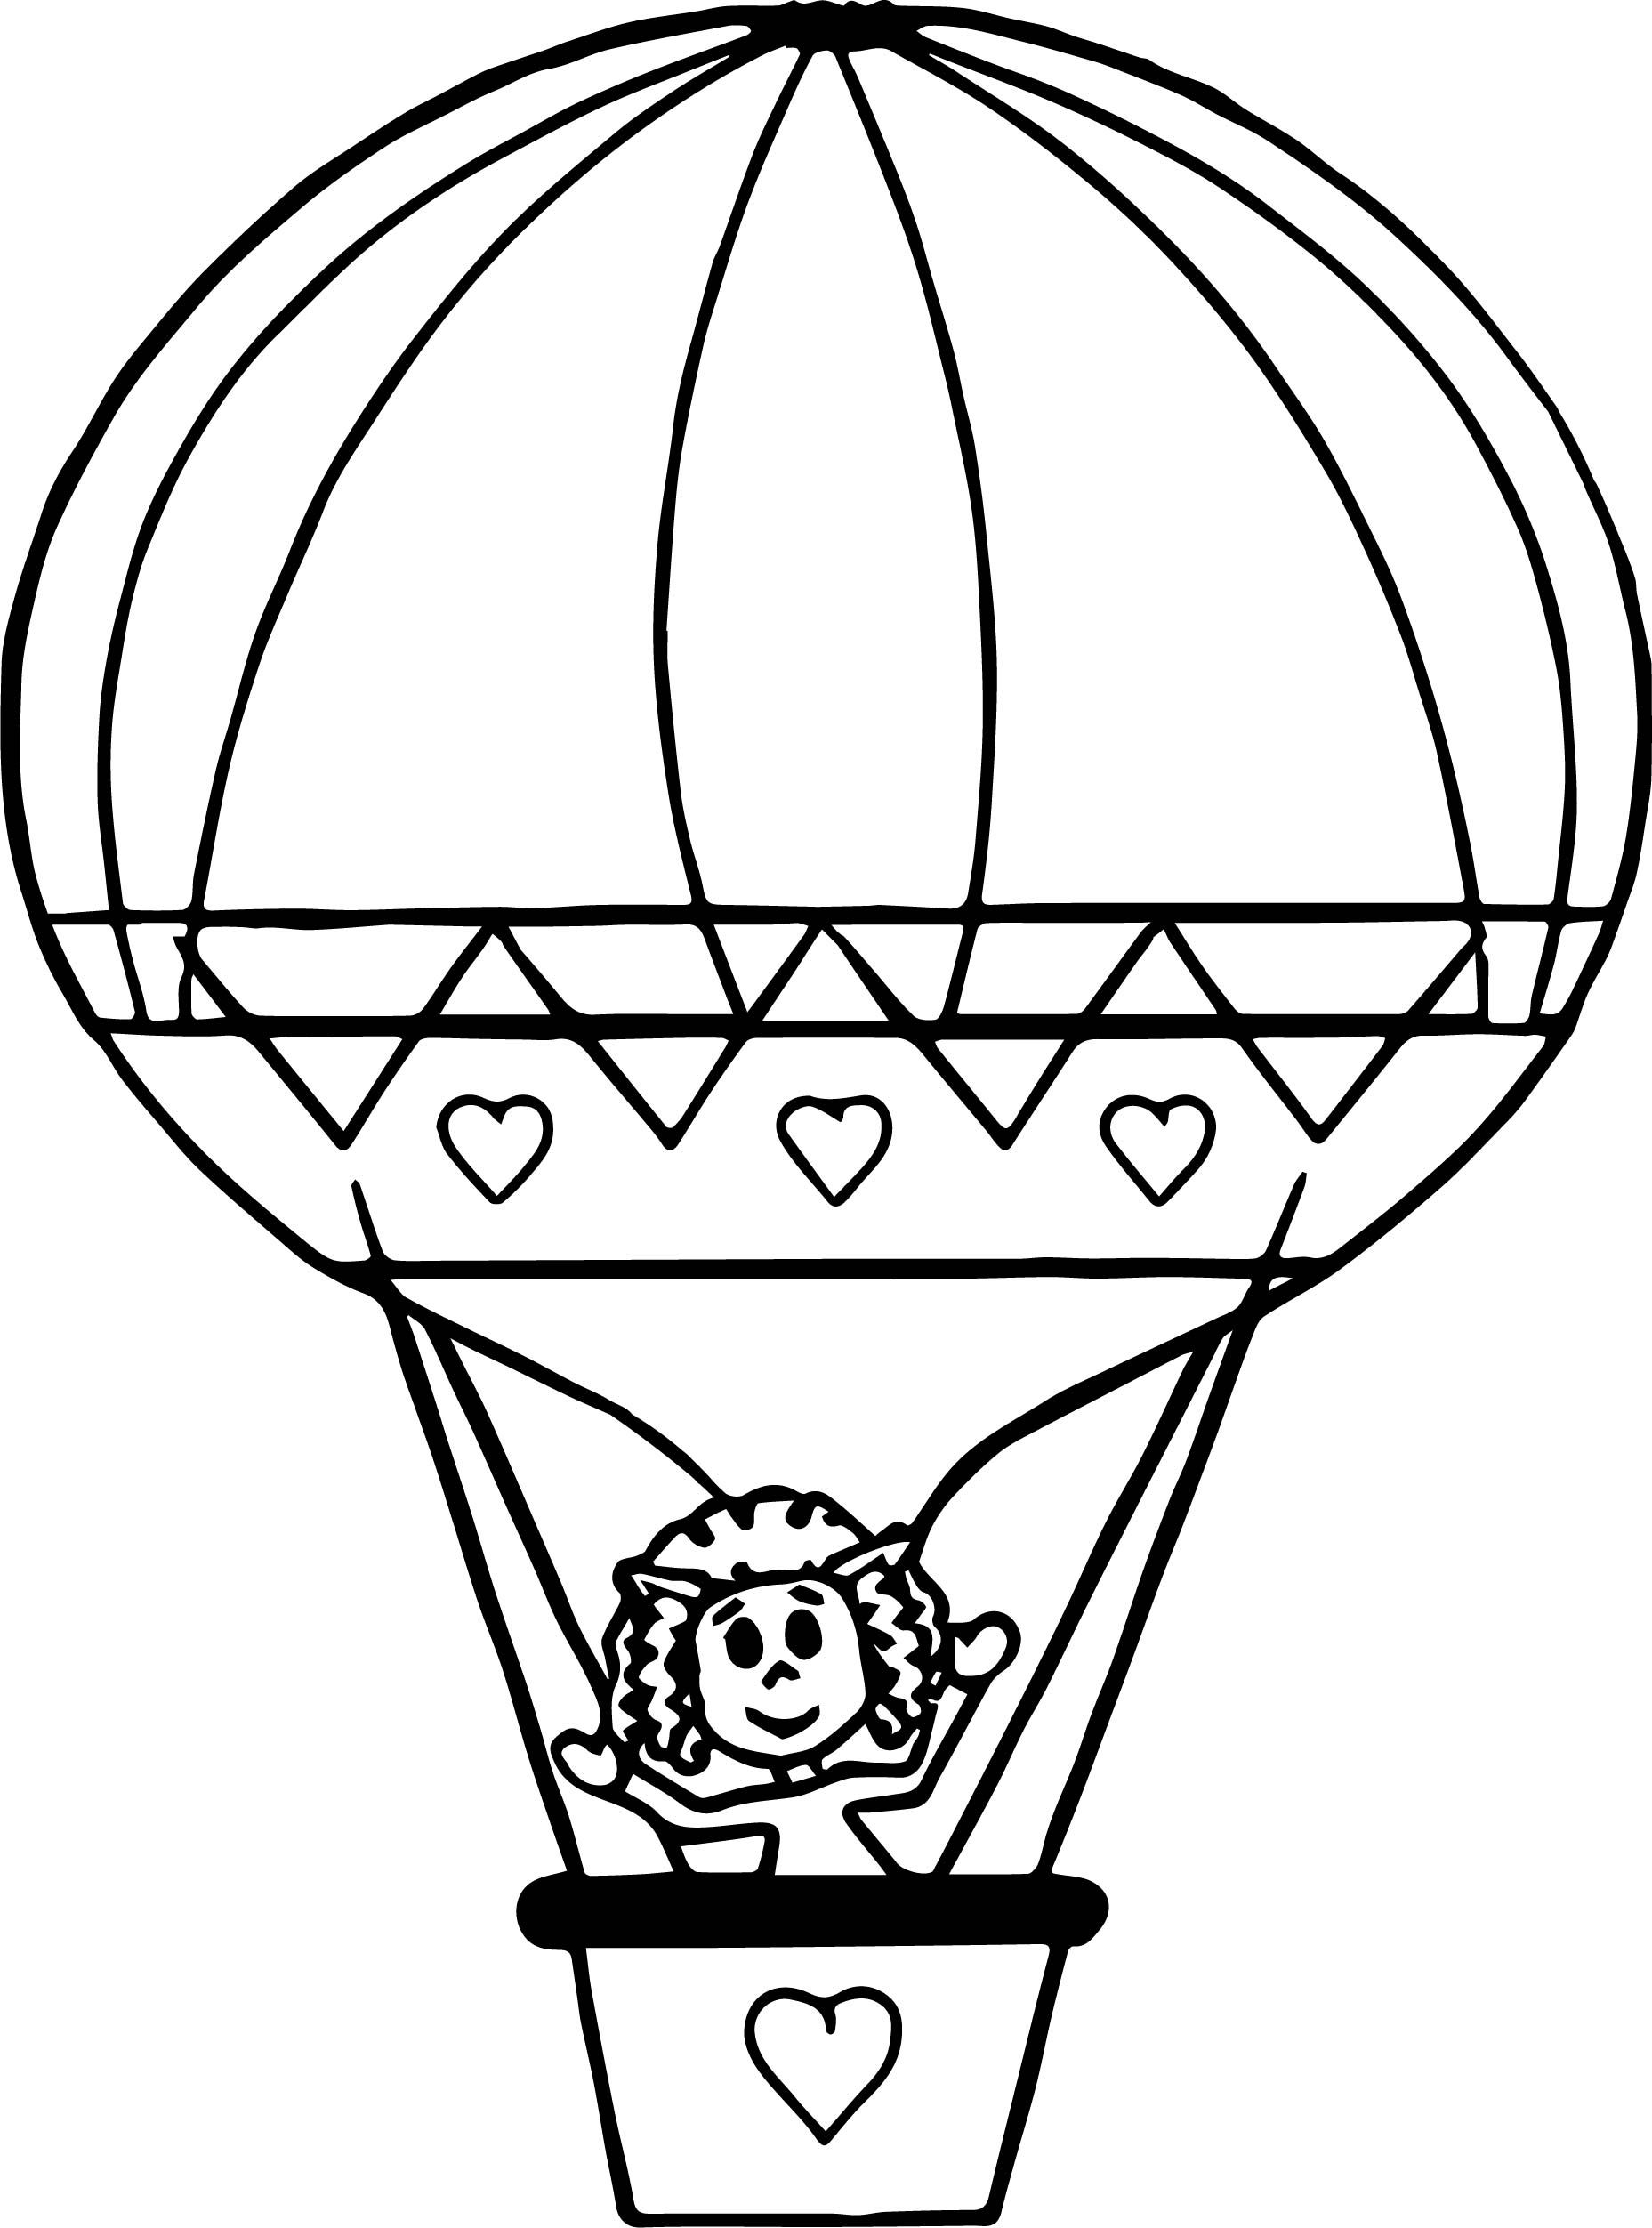 coloring balloon drawing for kids hot air balloon with lines coloring page print color fun balloon coloring drawing kids for